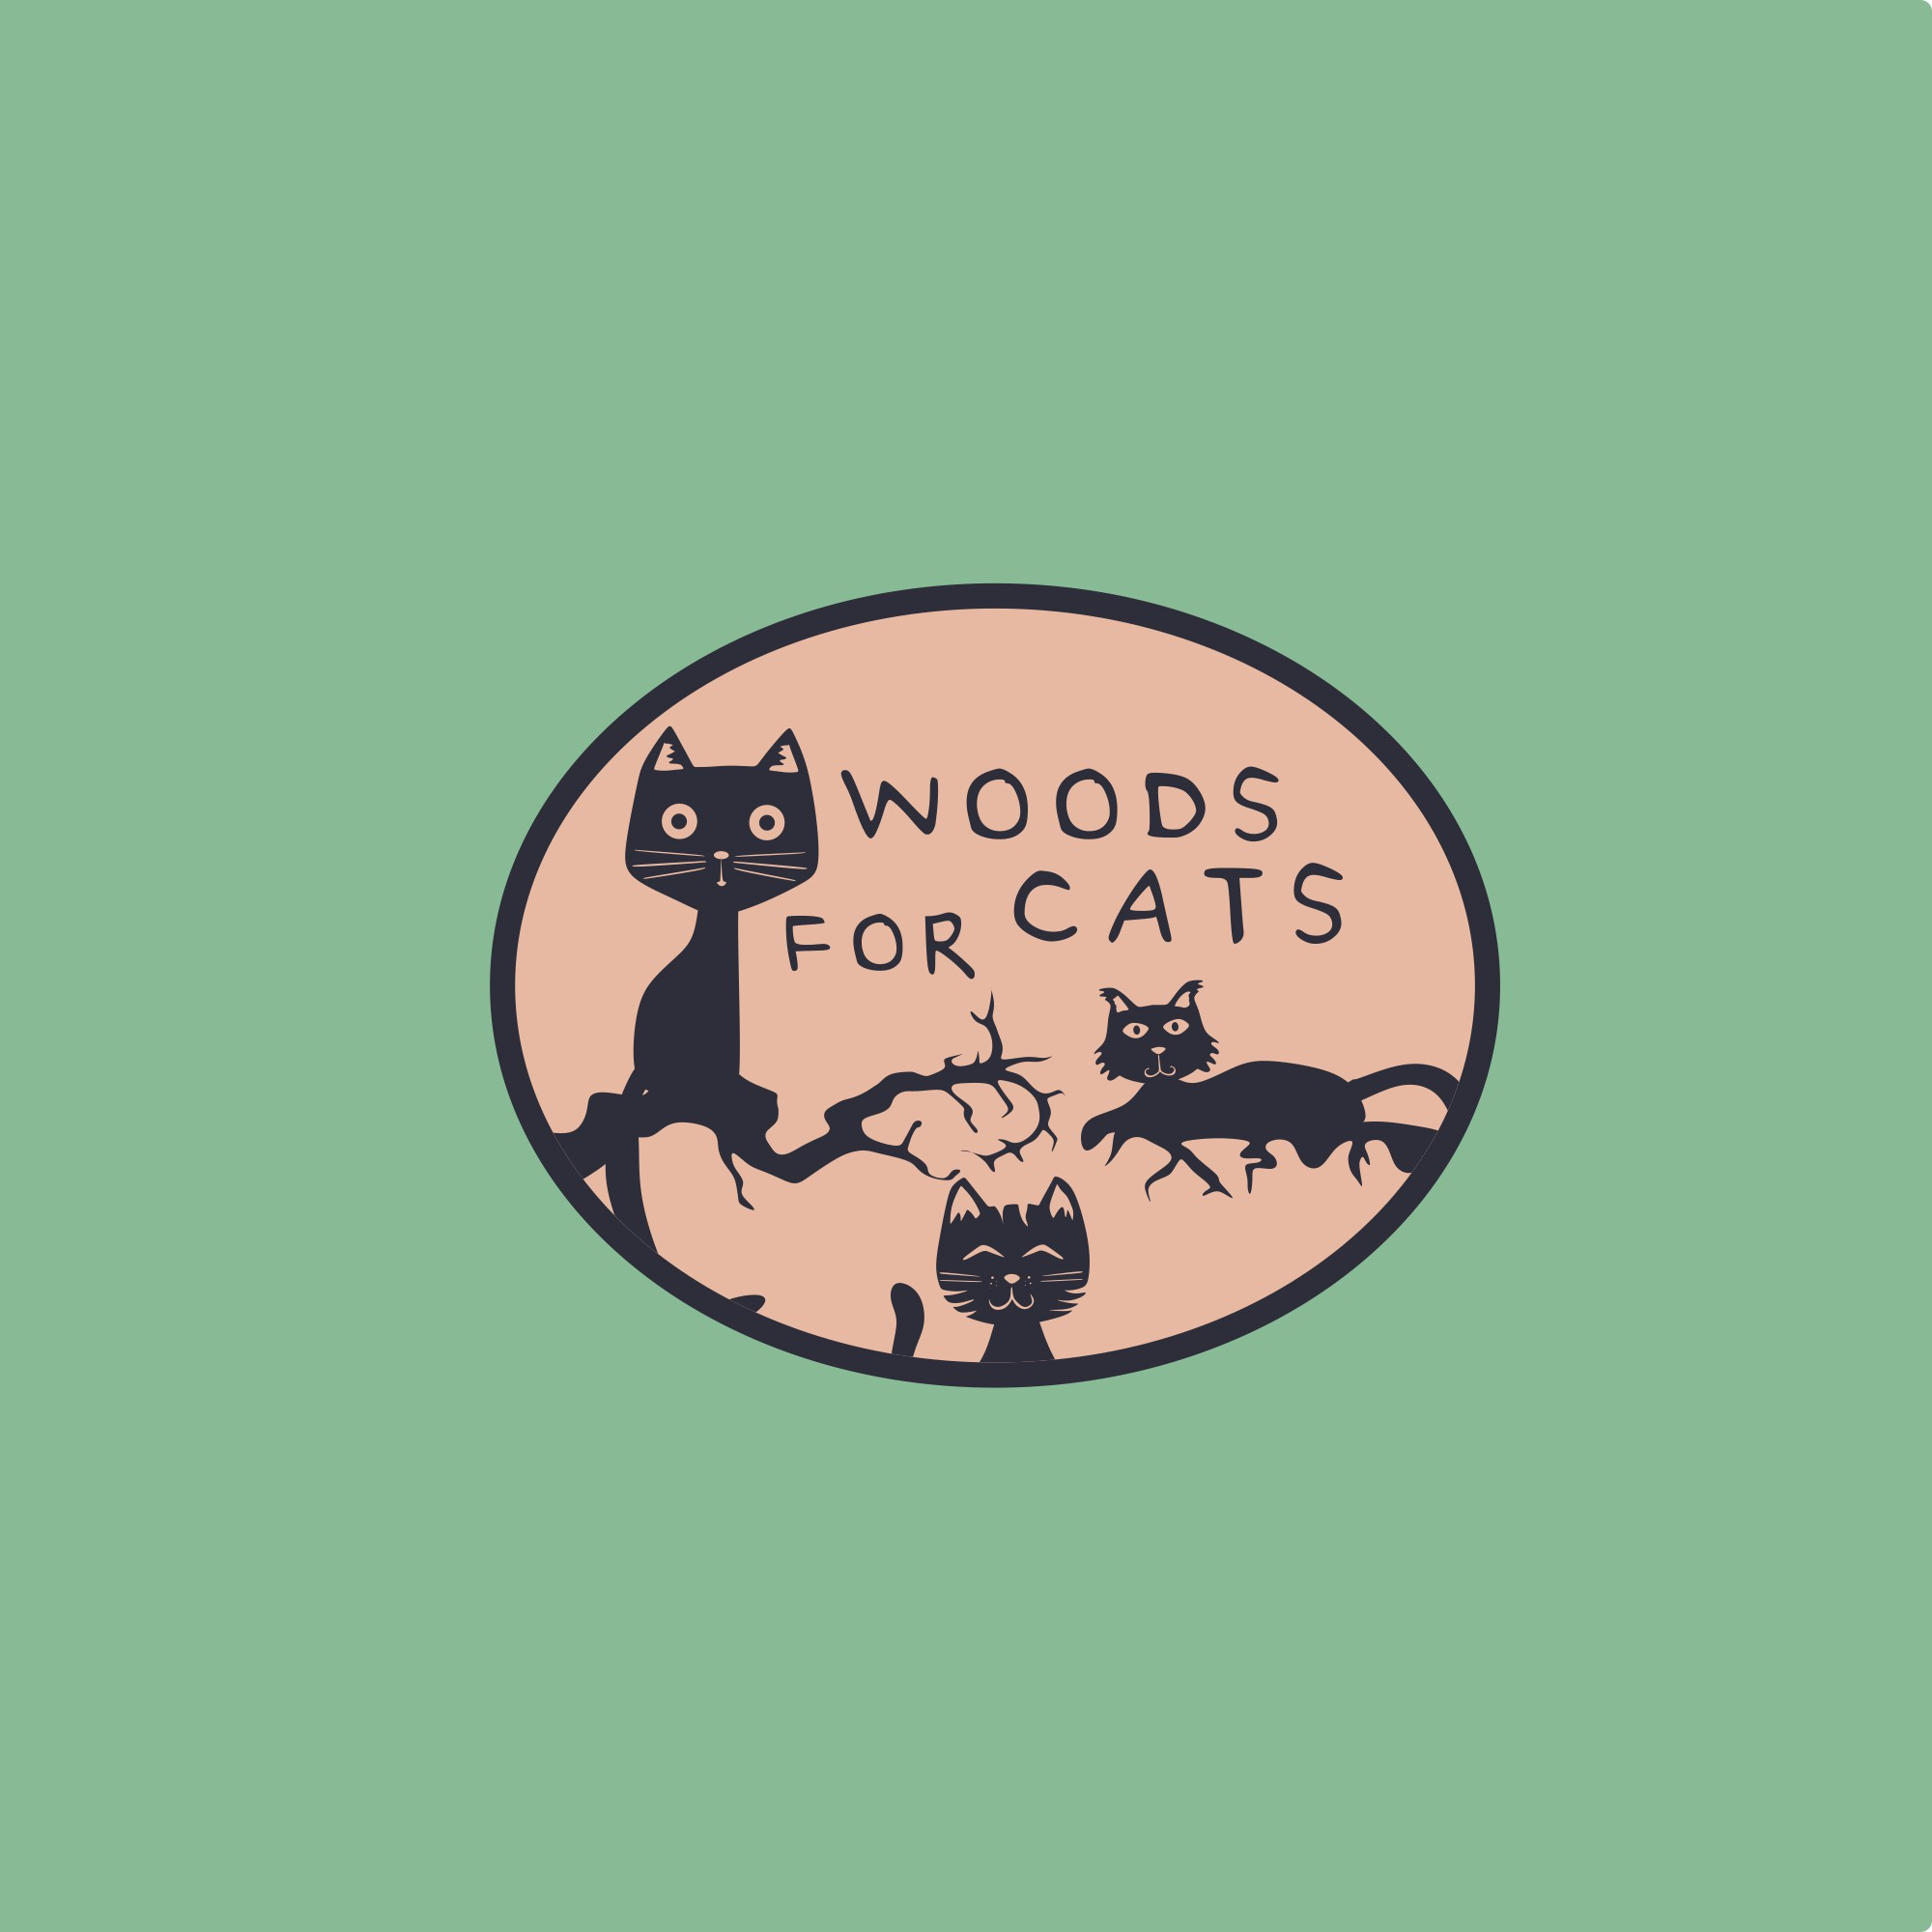 any cool-cats out there to make a logo for wood-for-cats?